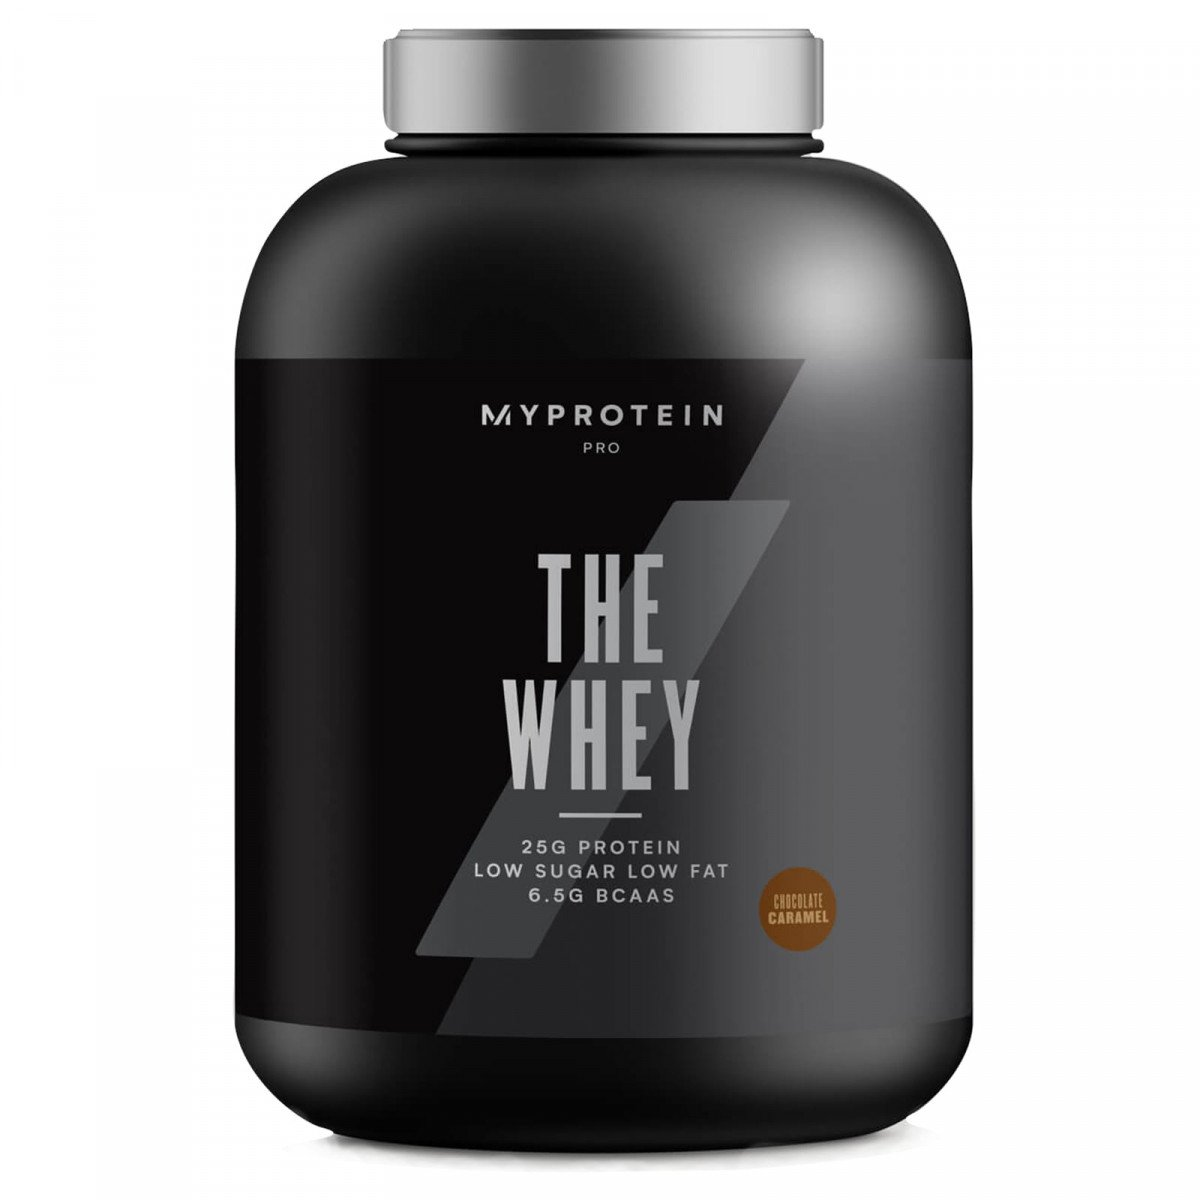 THE Whey 1.8 kg